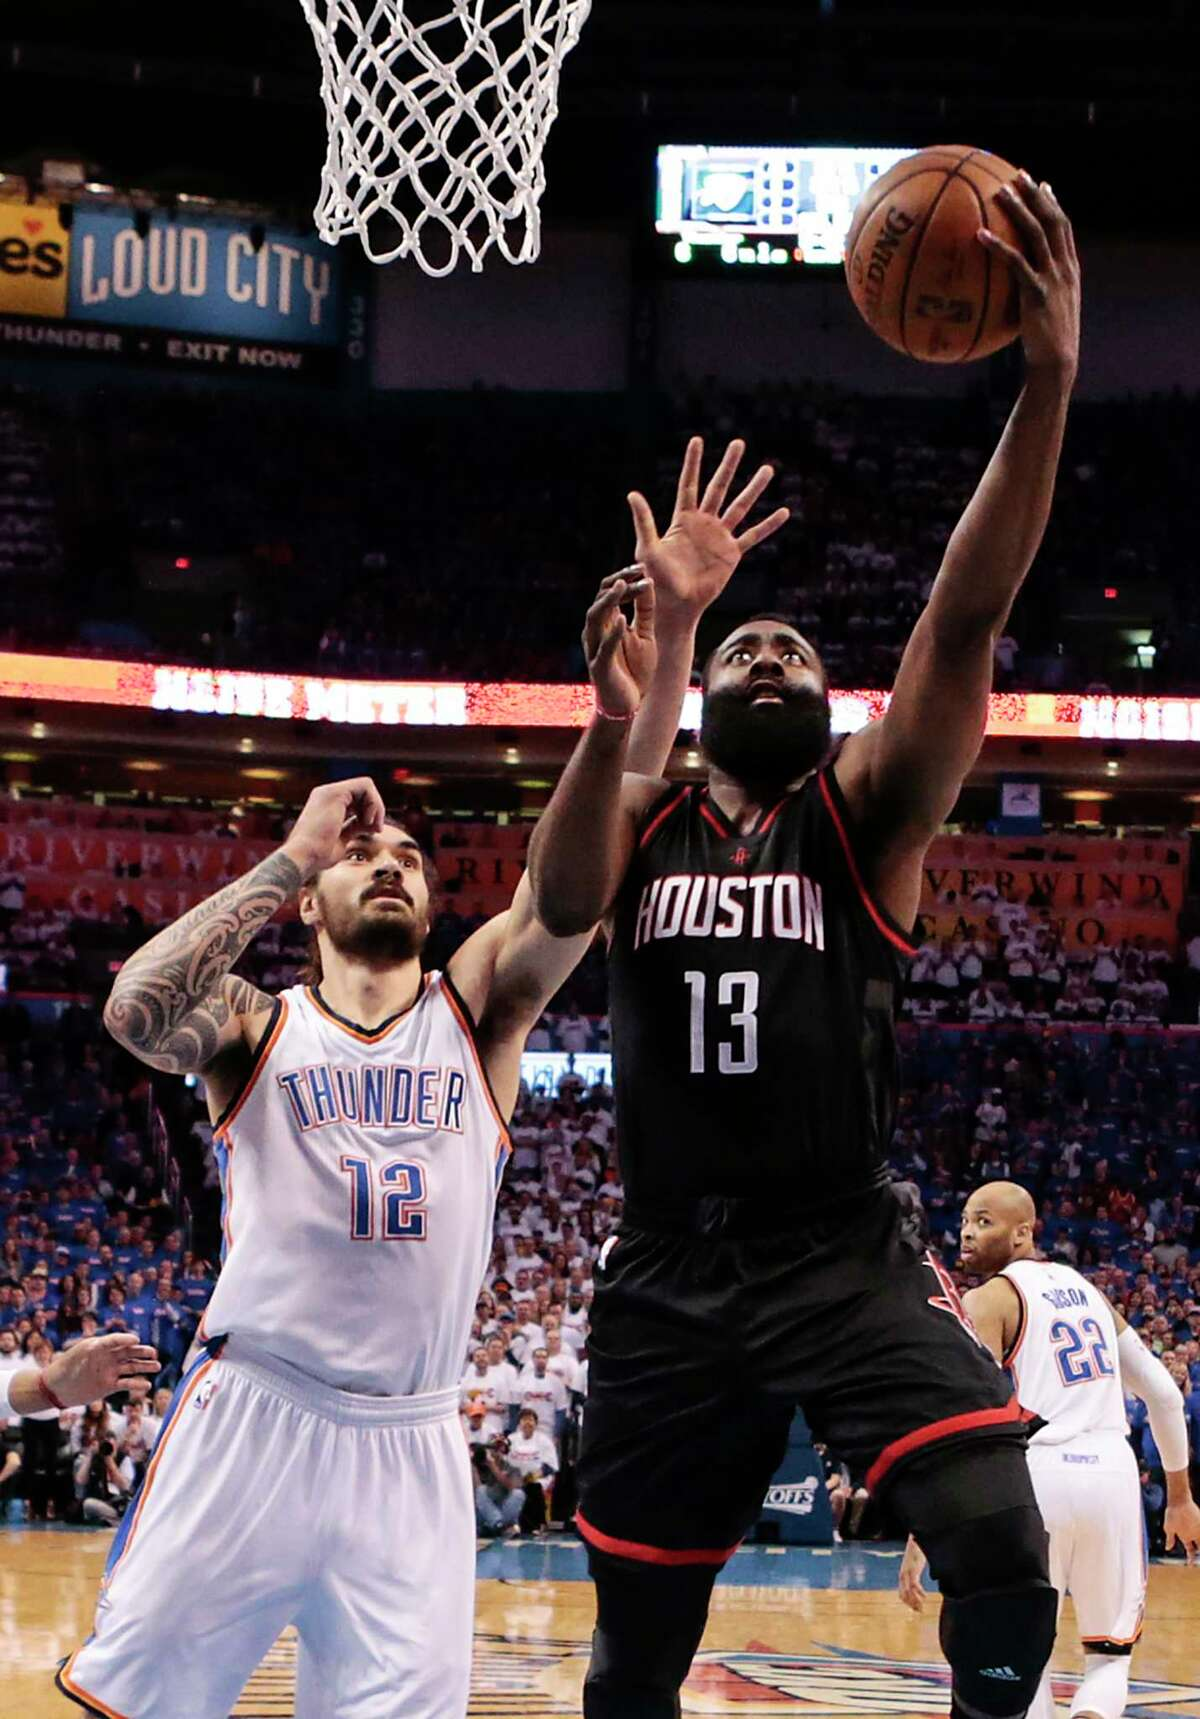 Houston Rockets guard James Harden (13) shoots a layup as he runs past Oklahoma City Thunder center Steven Adams (12) during the first half of Game 3 of the NBA Western Conference first-round playoff series at Chesapeake Energy Arena on Friday, April 21, 2017, in Oklahoma City. ( Brett Coomer / Houston Chronicle )